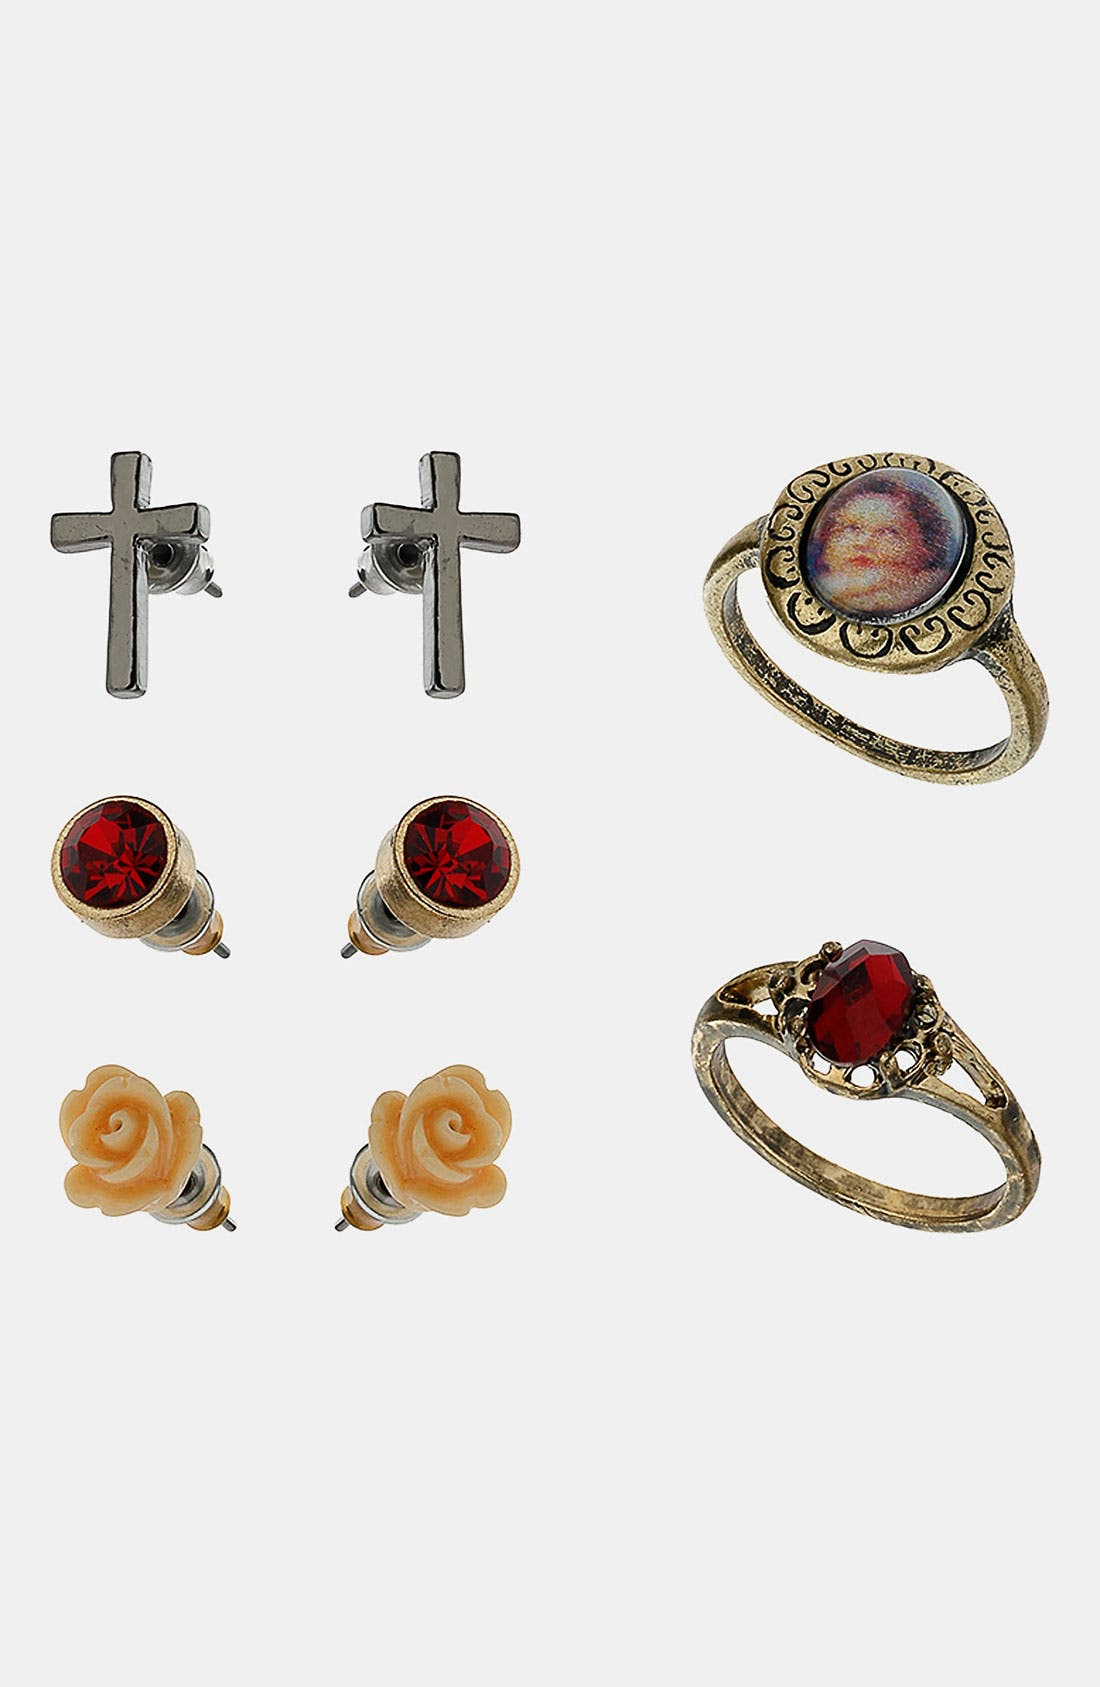 Alternate Image 1 Selected - Topshop 'Ditsy Baroque' Assorted Earrings & Rings (Set of 5)